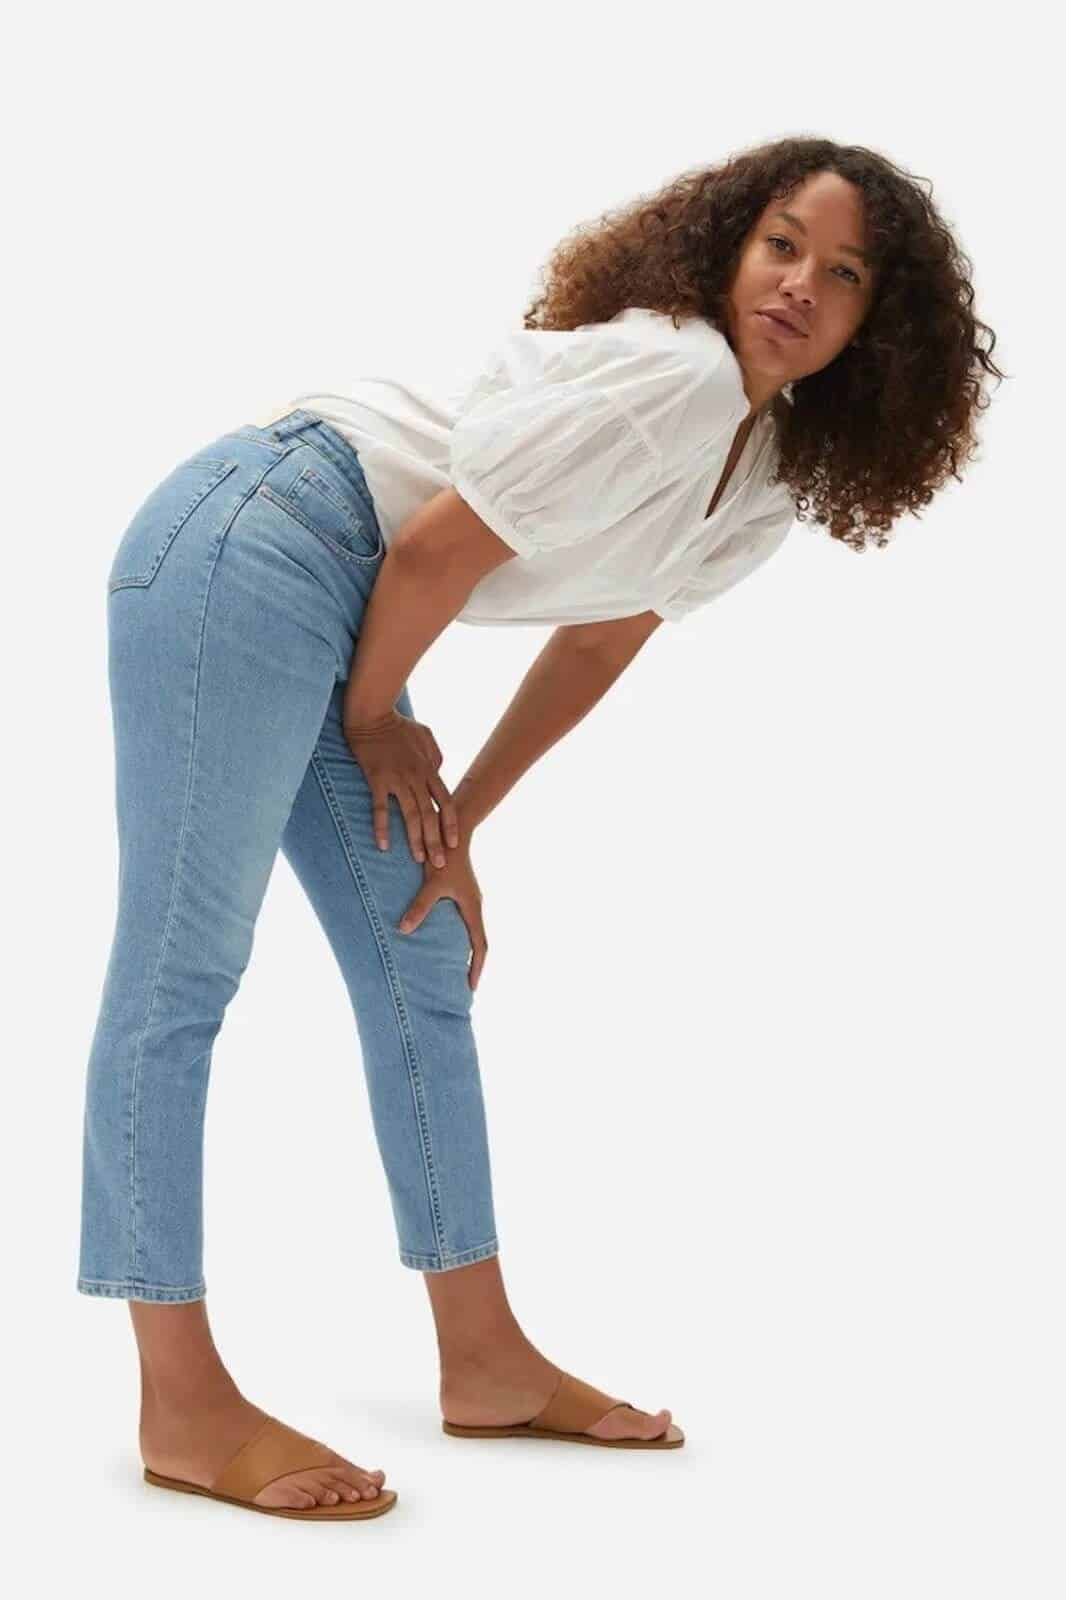 Green is the new blue! For sustainable ethical jeans that is. We're so impressed with these brands Image by Everlane #ethicaljeans #sustainablejungle